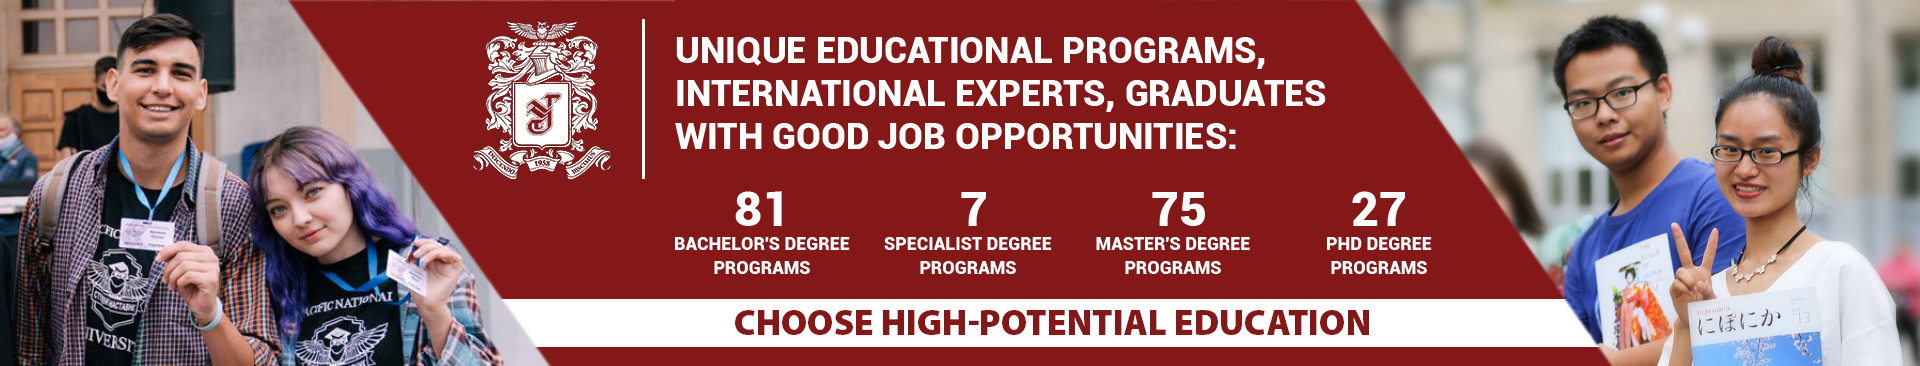 Choose High-potential education